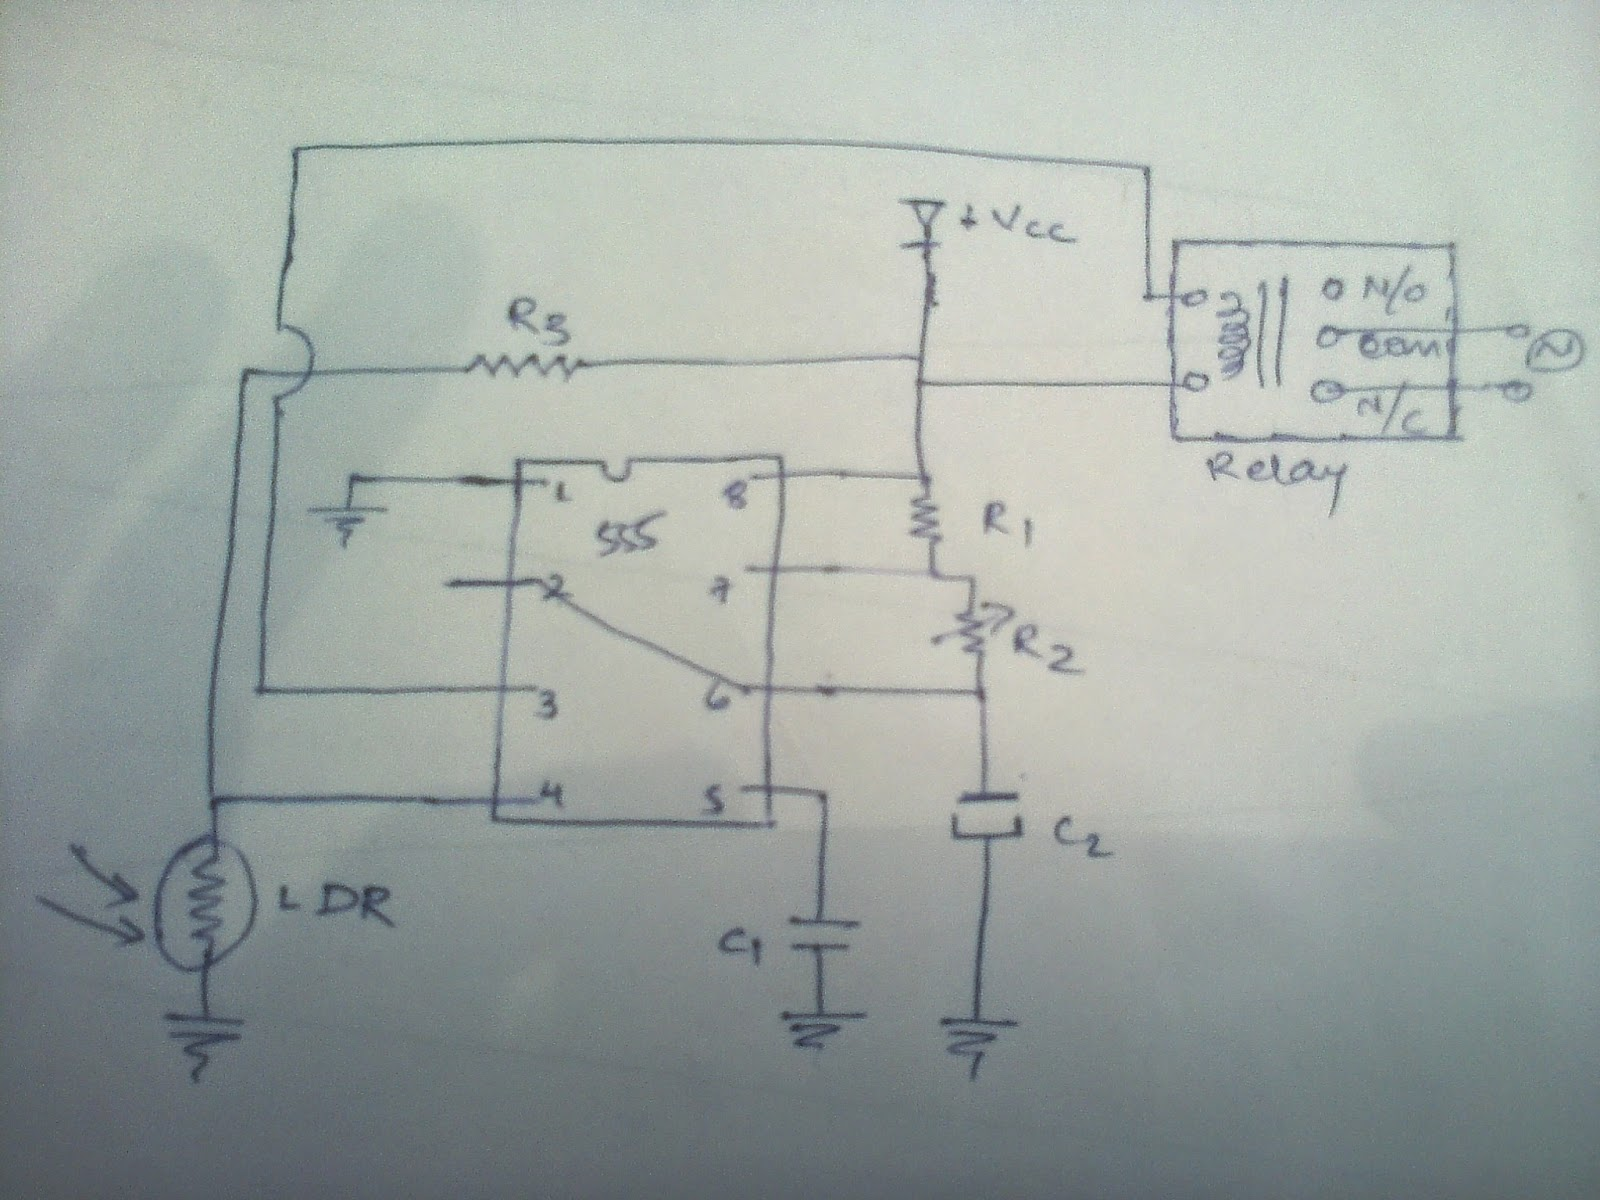 Funky Fire Alarm Circuit Using Ldr Pictures - Wiring Standart ...